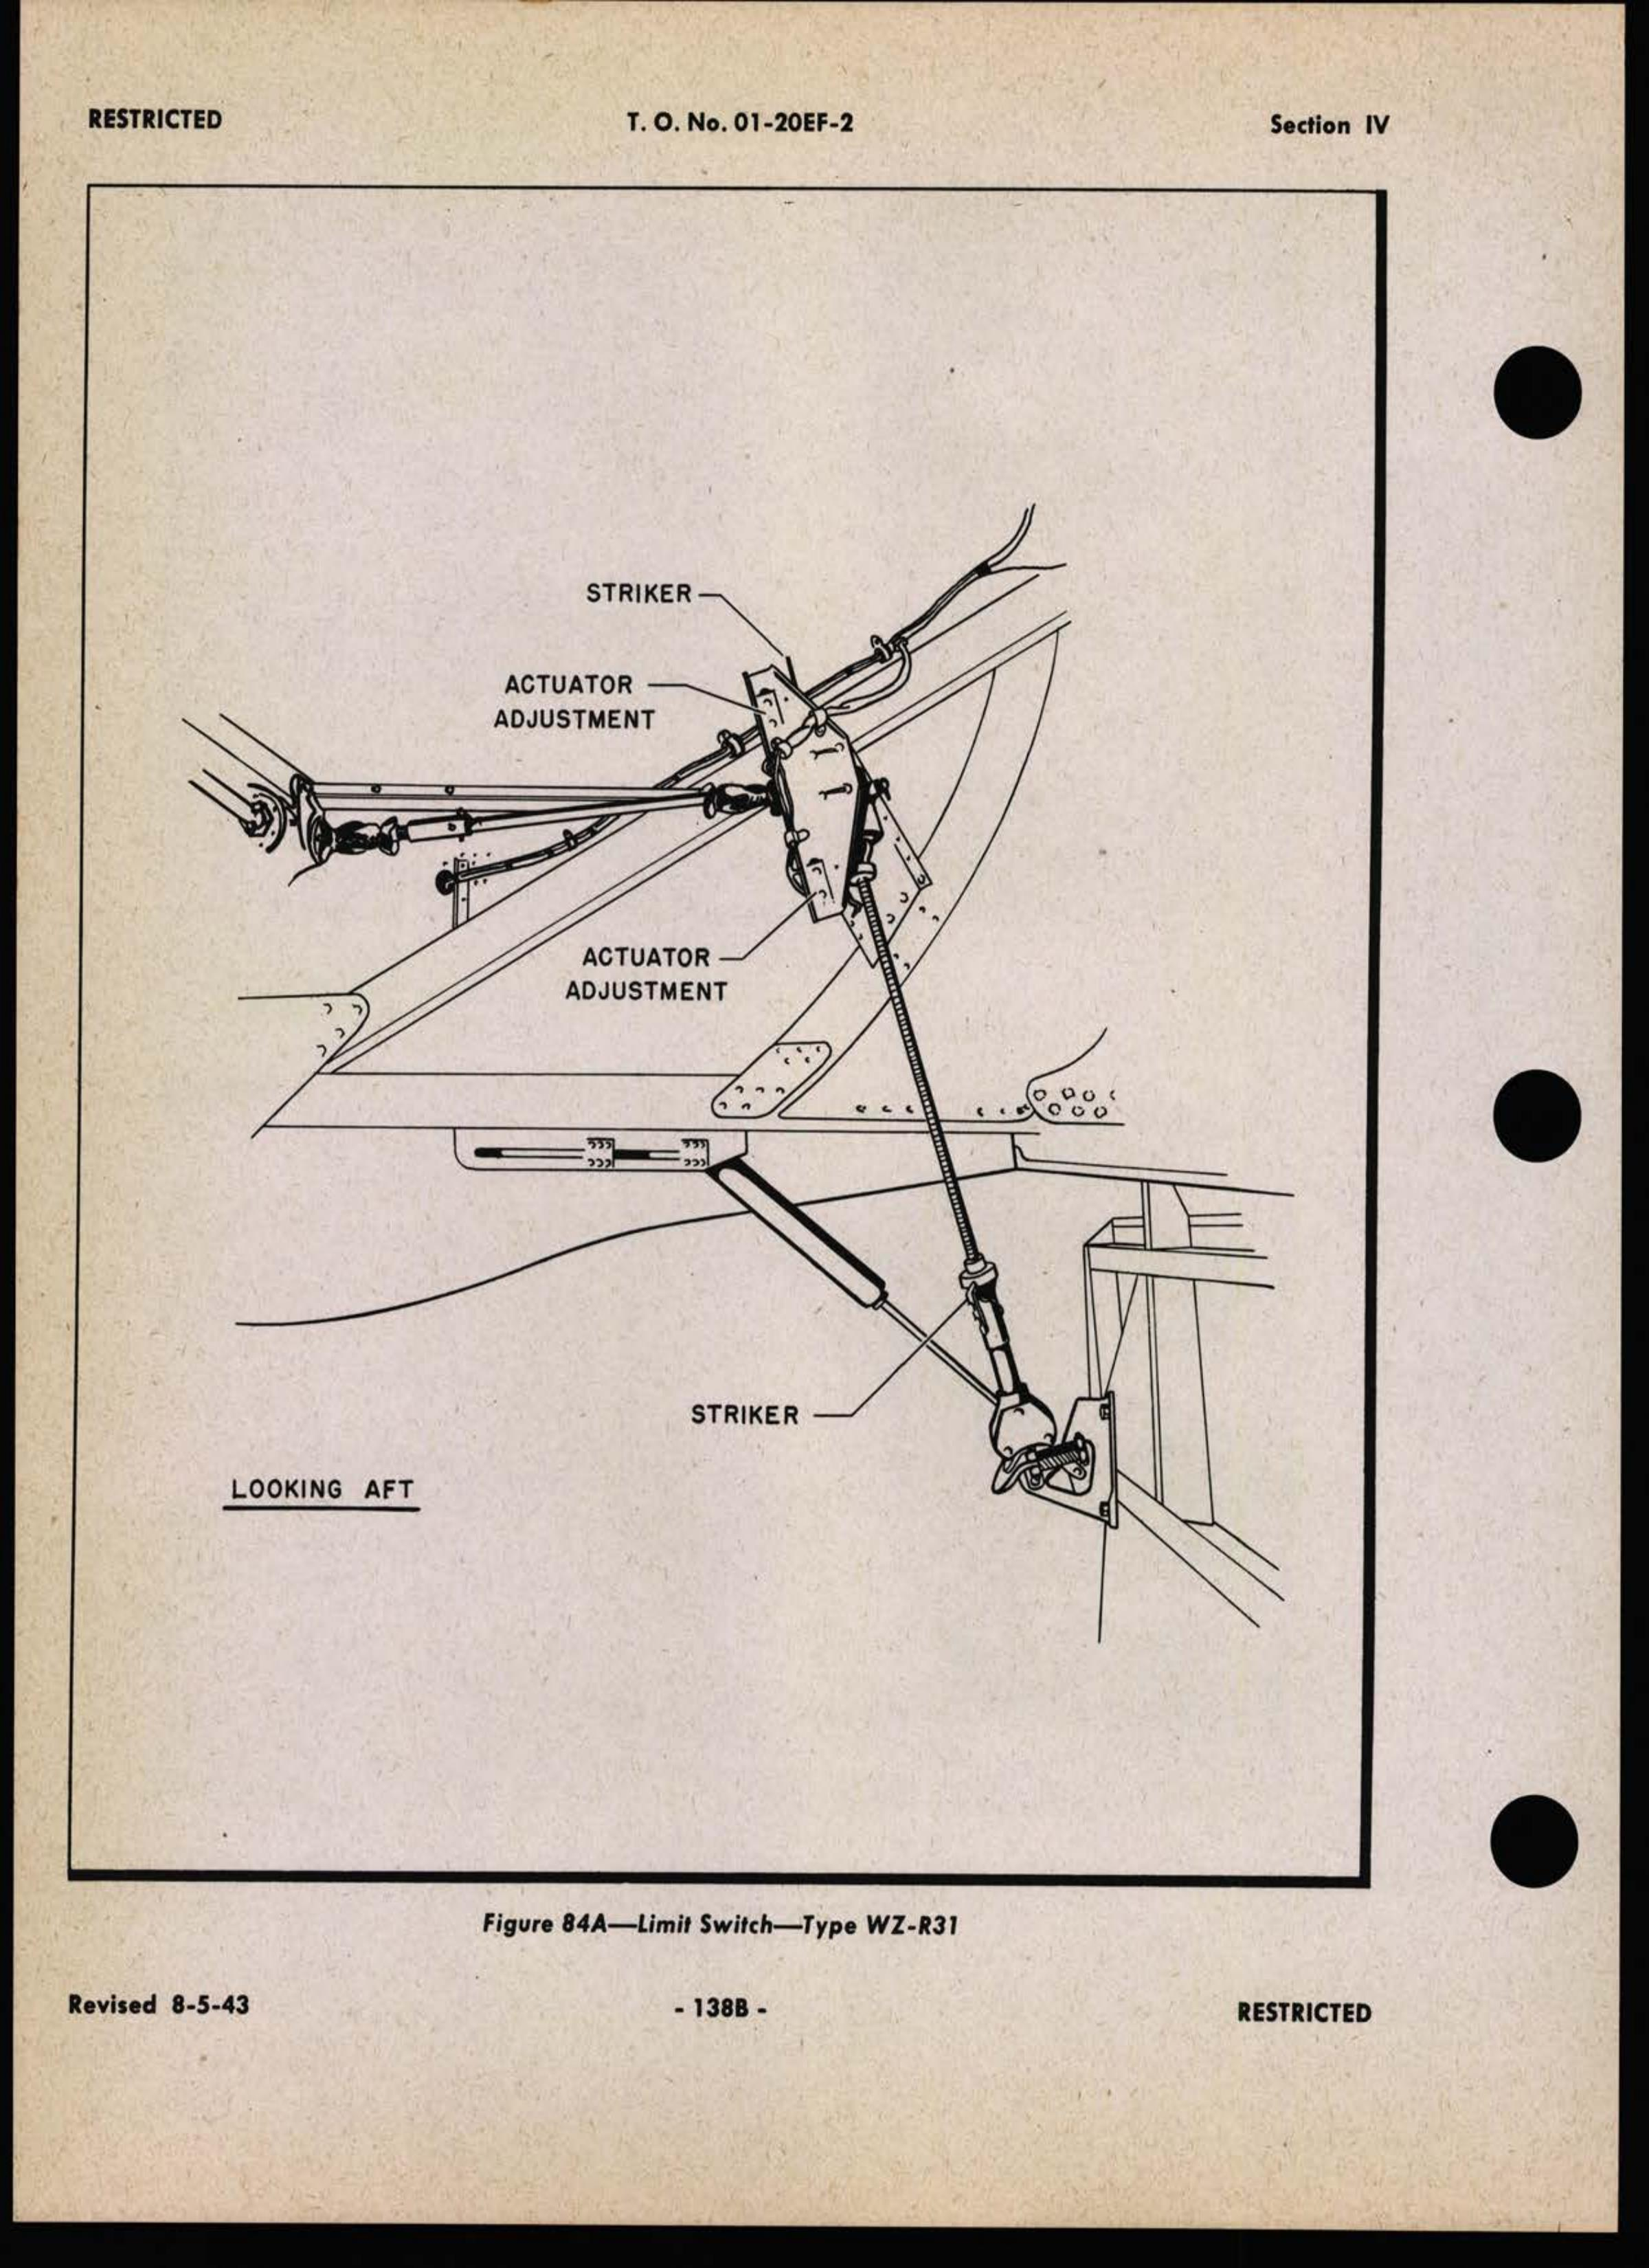 Sample page 146 from AirCorps Library document: Erection & Maintenance - B-17F - Dec 1943